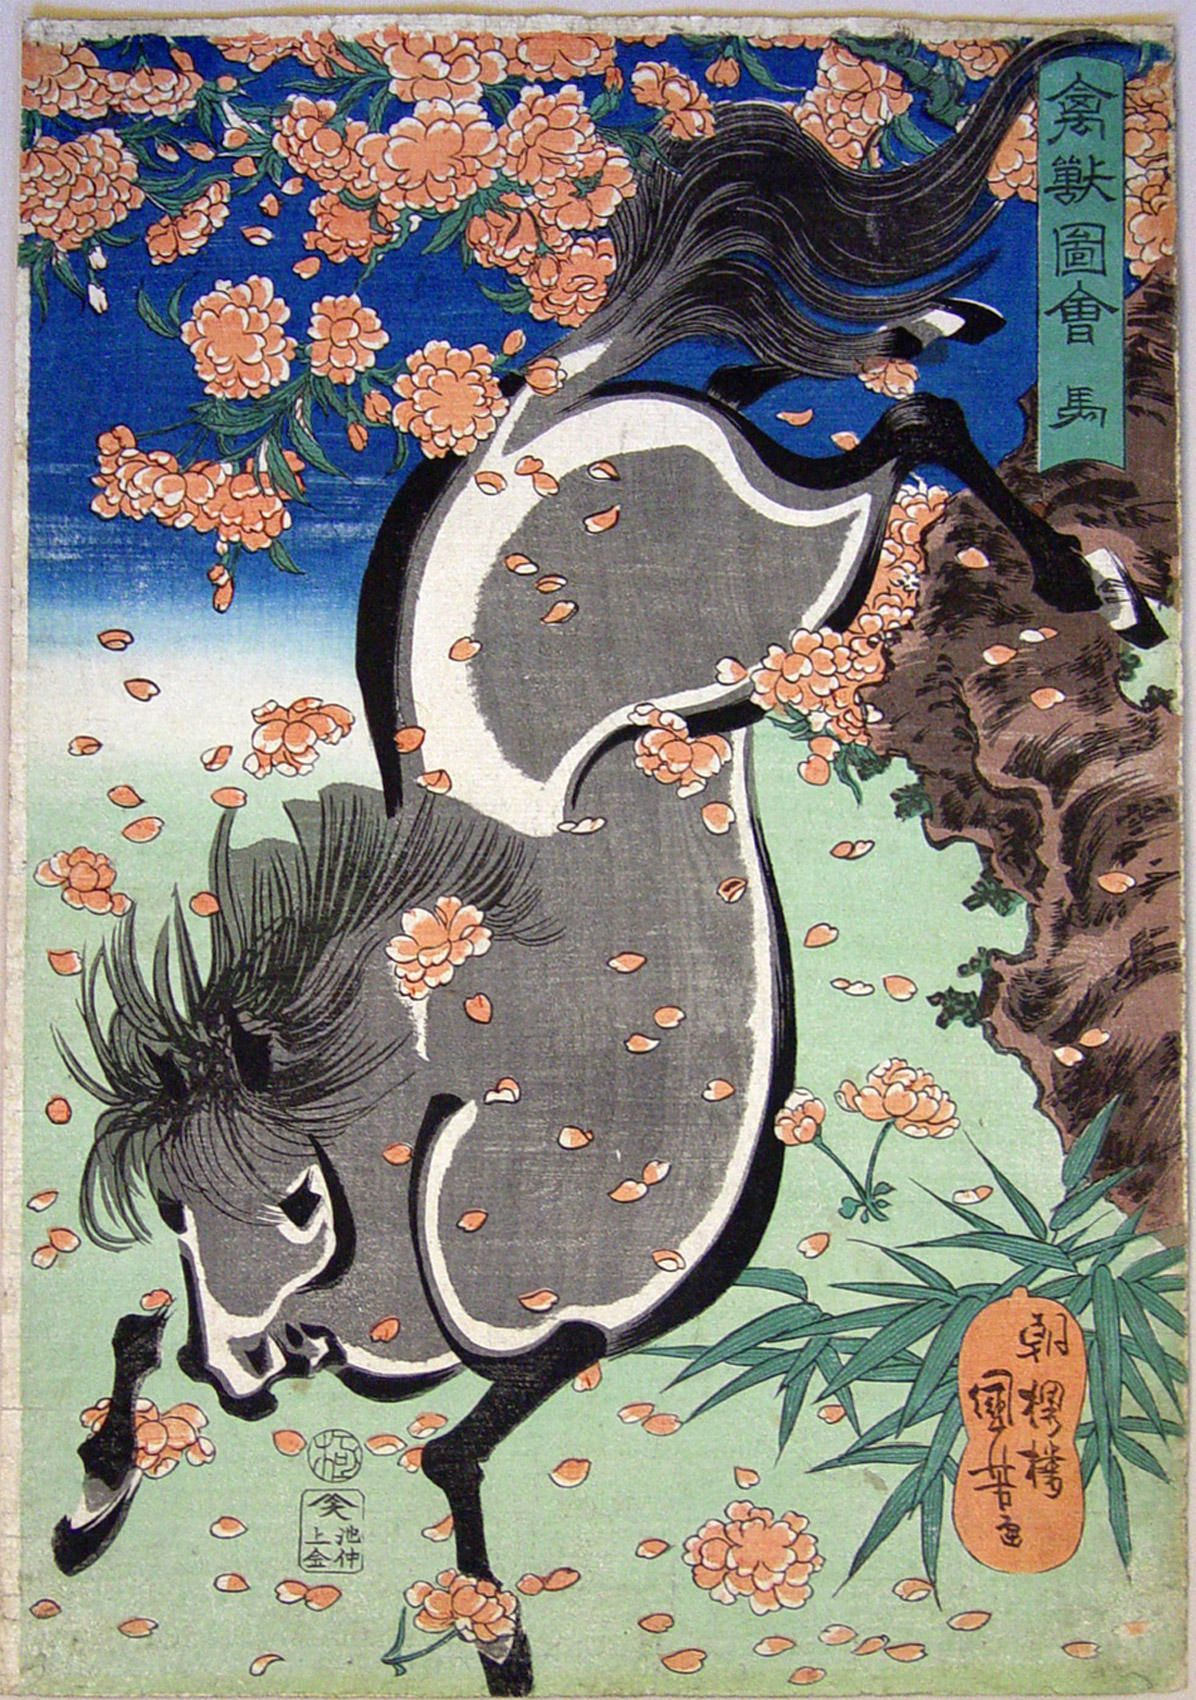 UTAGAWA KUNIYOSHI A leaping horse from the series Drawings of Birds and Beasts